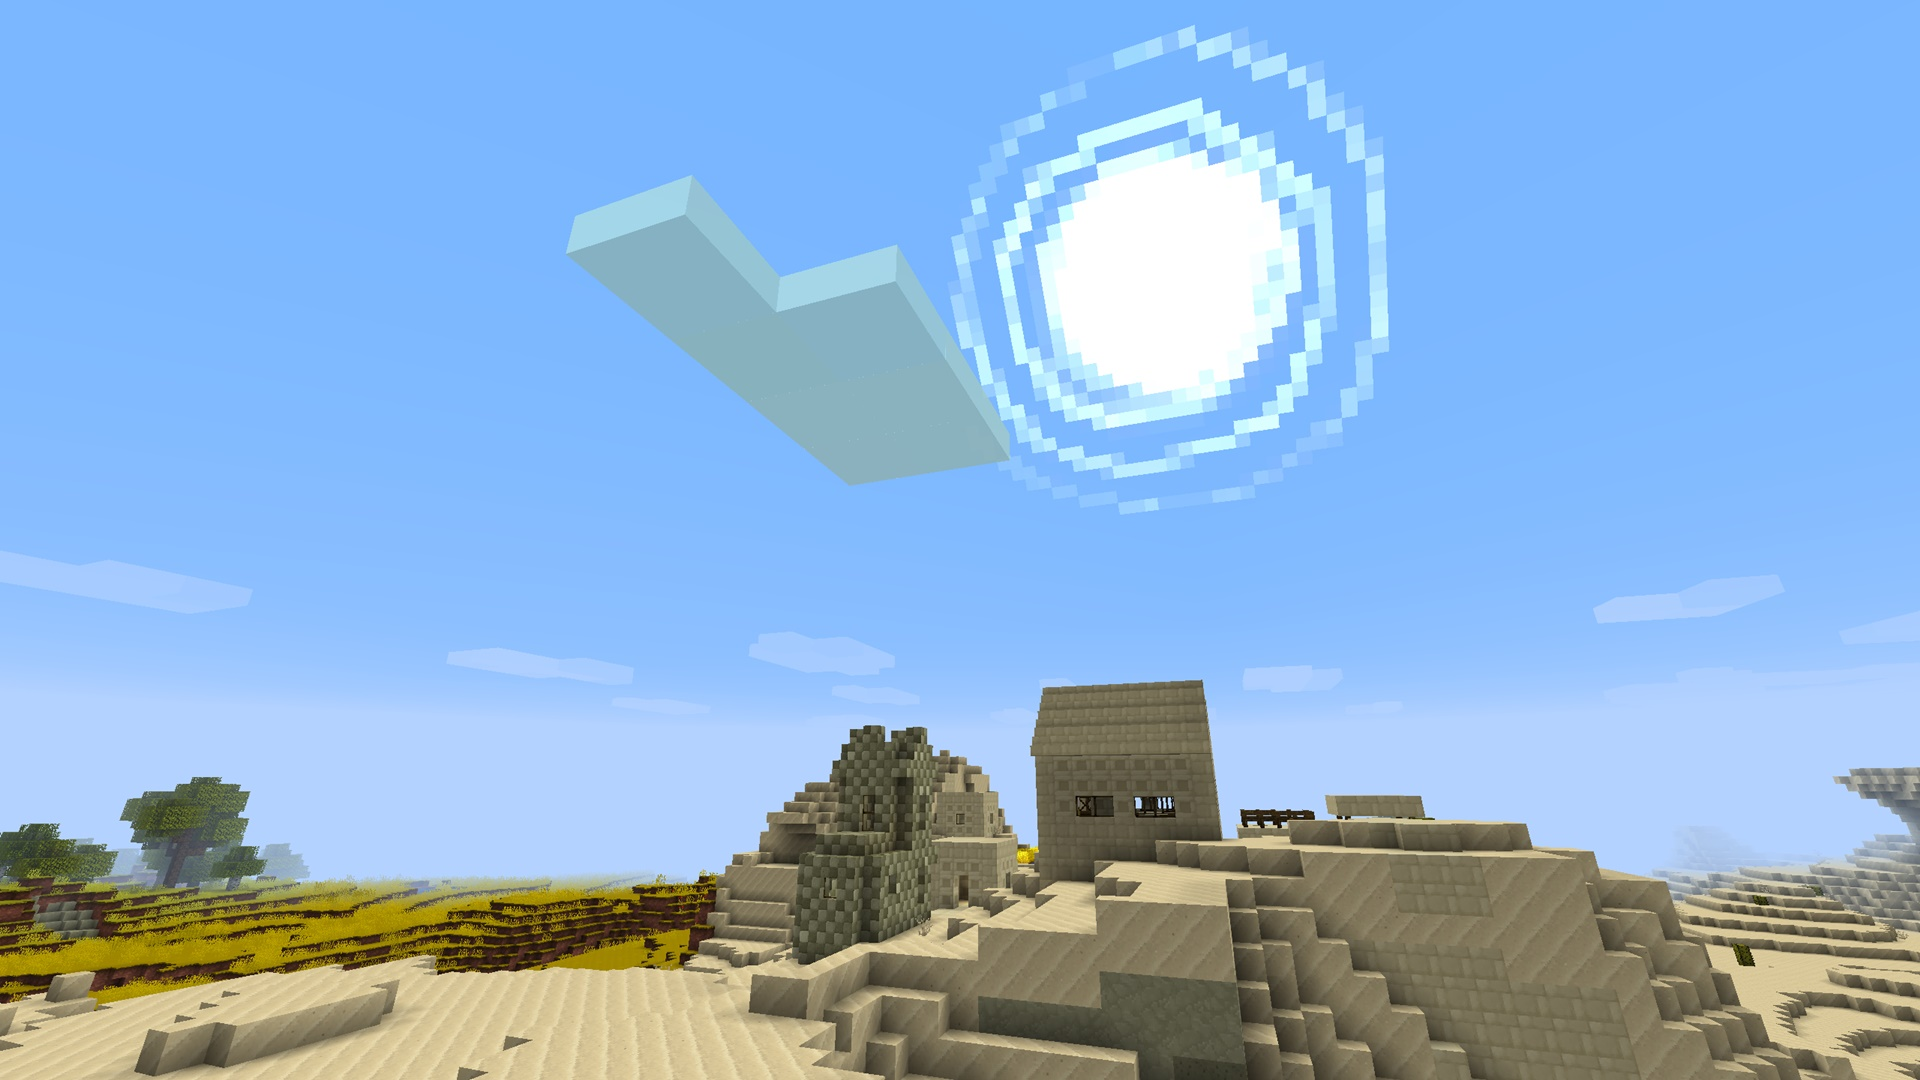 Best Minecraft Texture Packs For Java Edition Pcgamesn